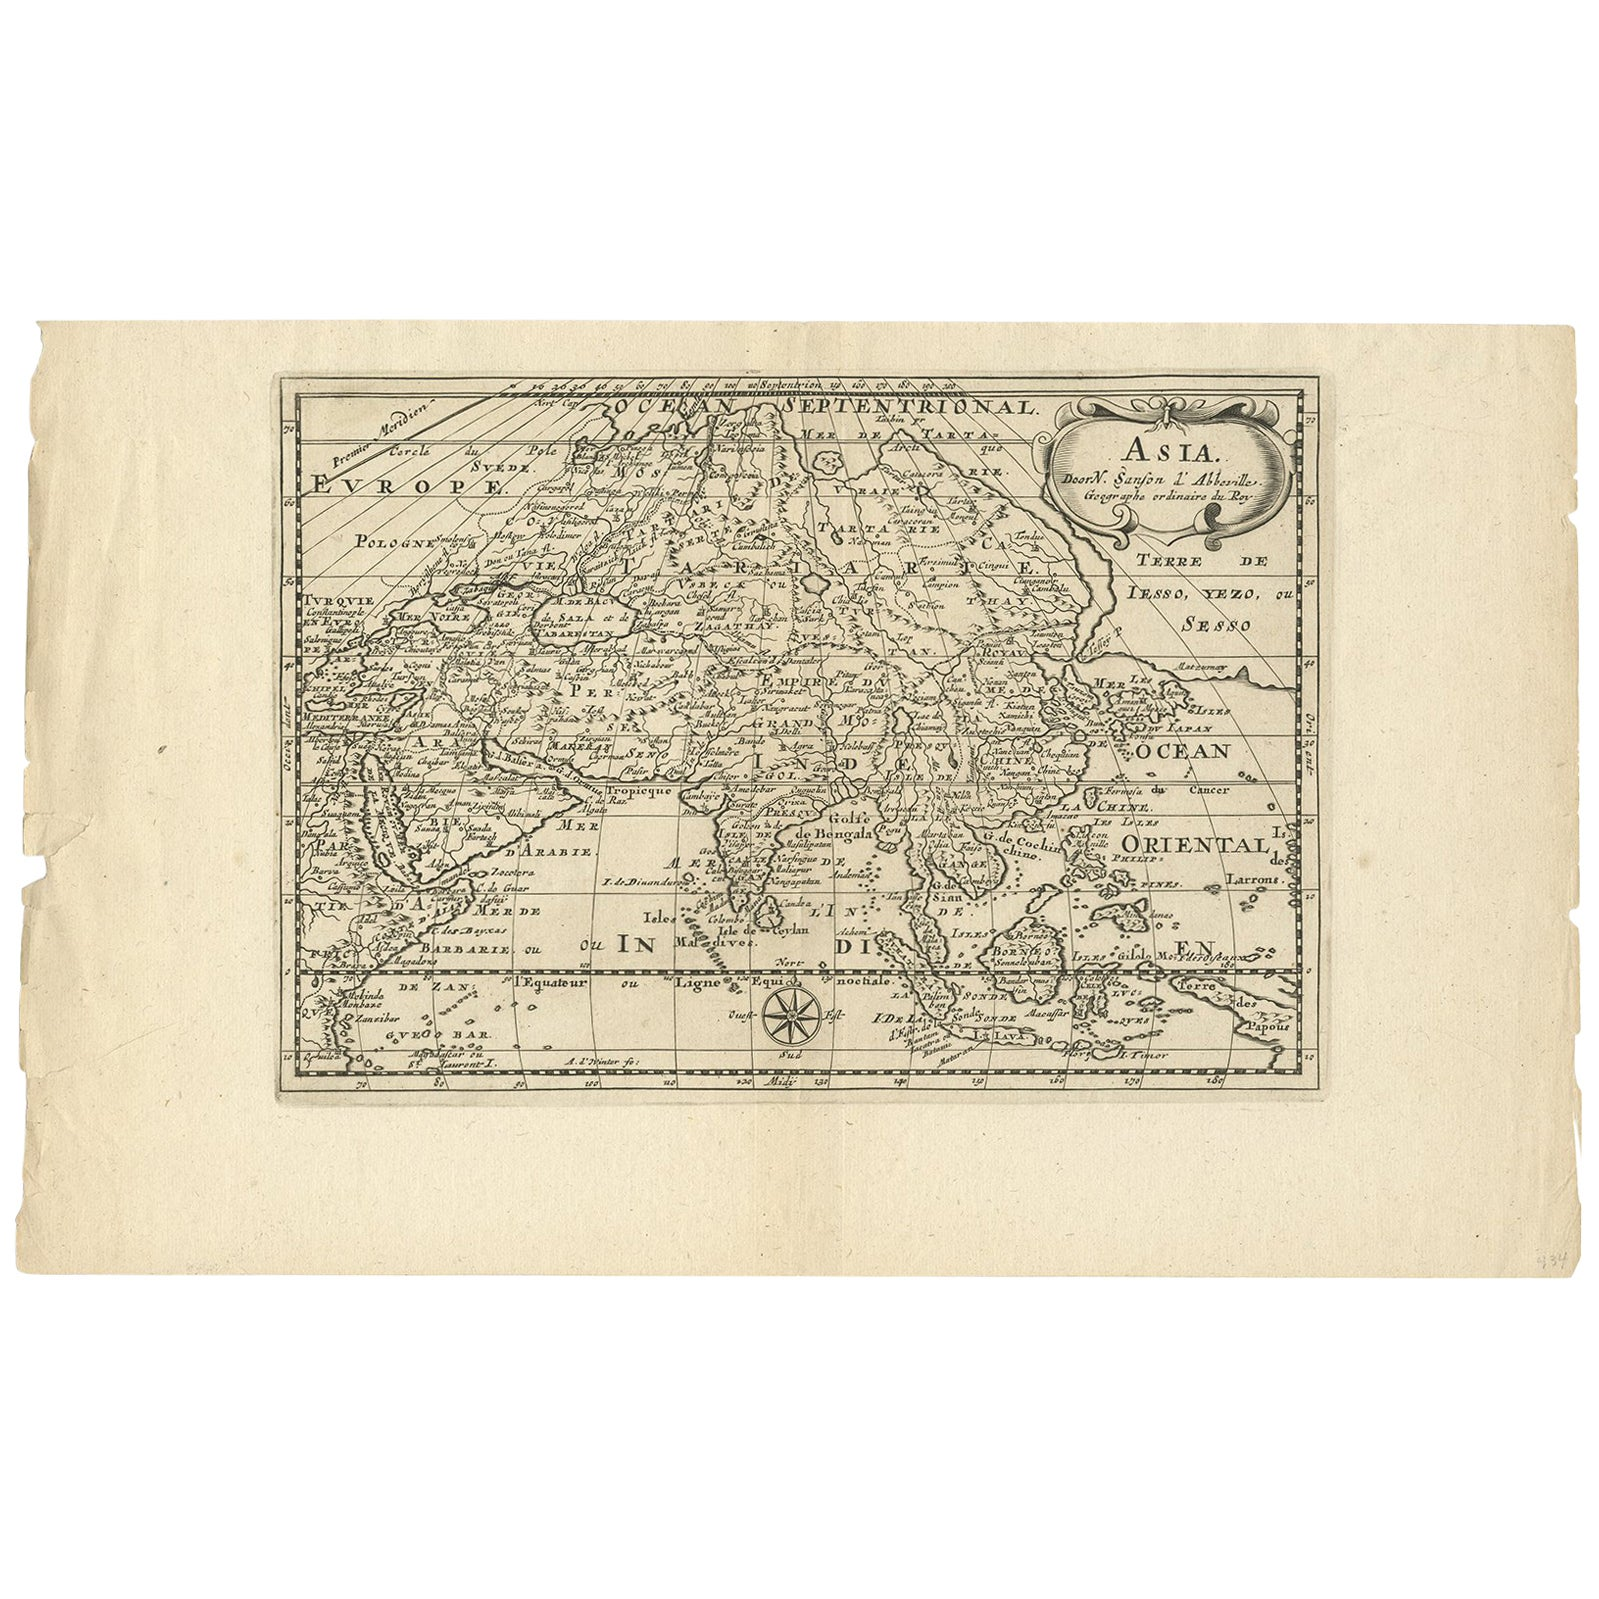 Antique Map of Asia by Sanson, circa 1705